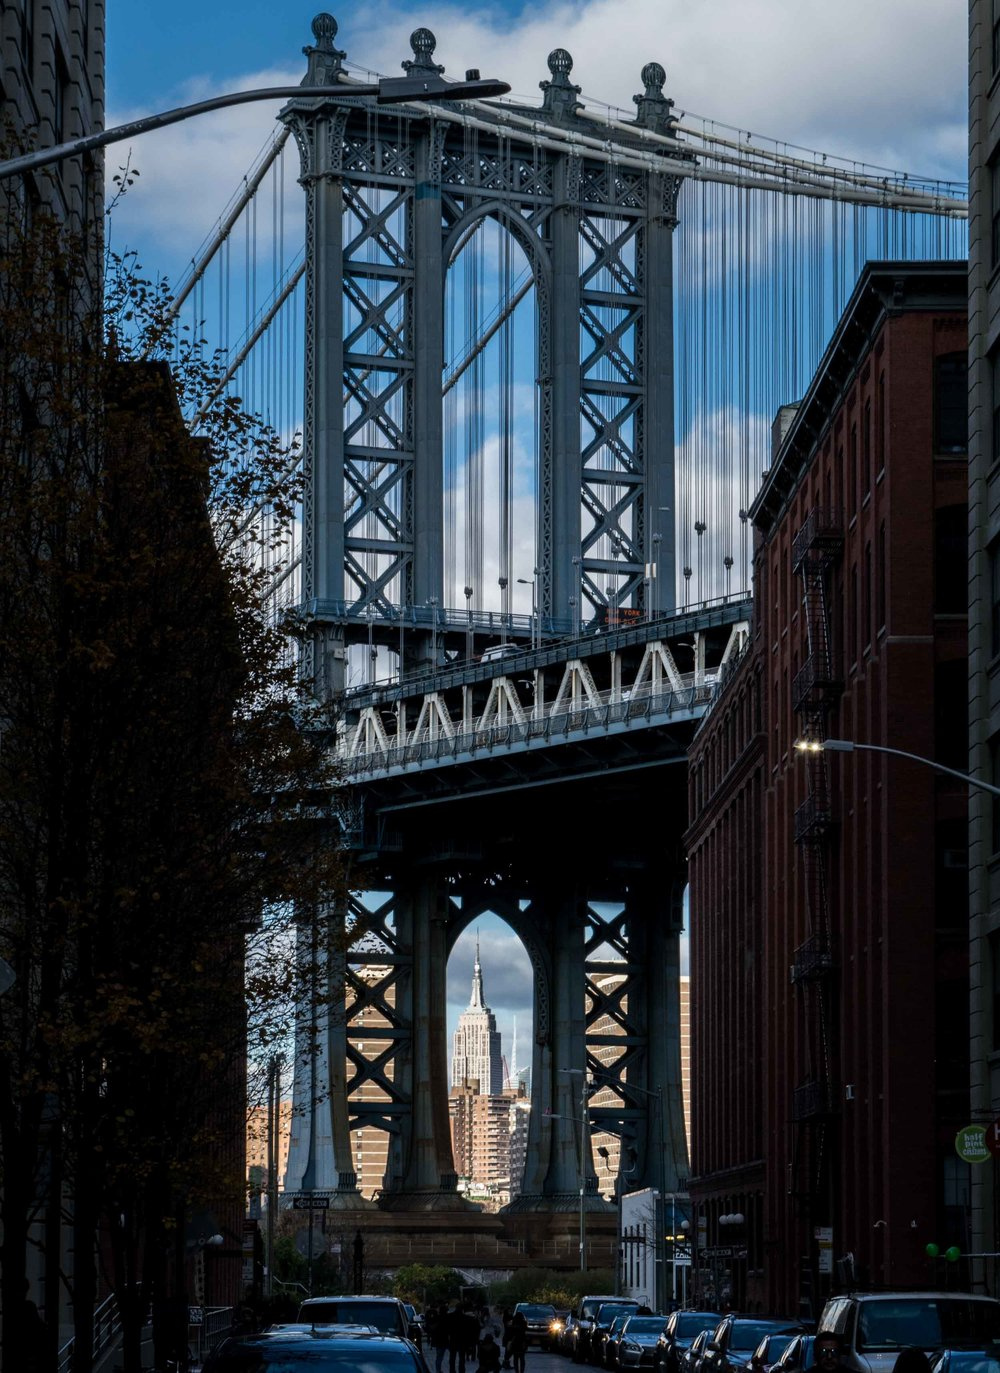 View of the Empire State Building between the Manhattan Bridge arches, taken in Dumbo.